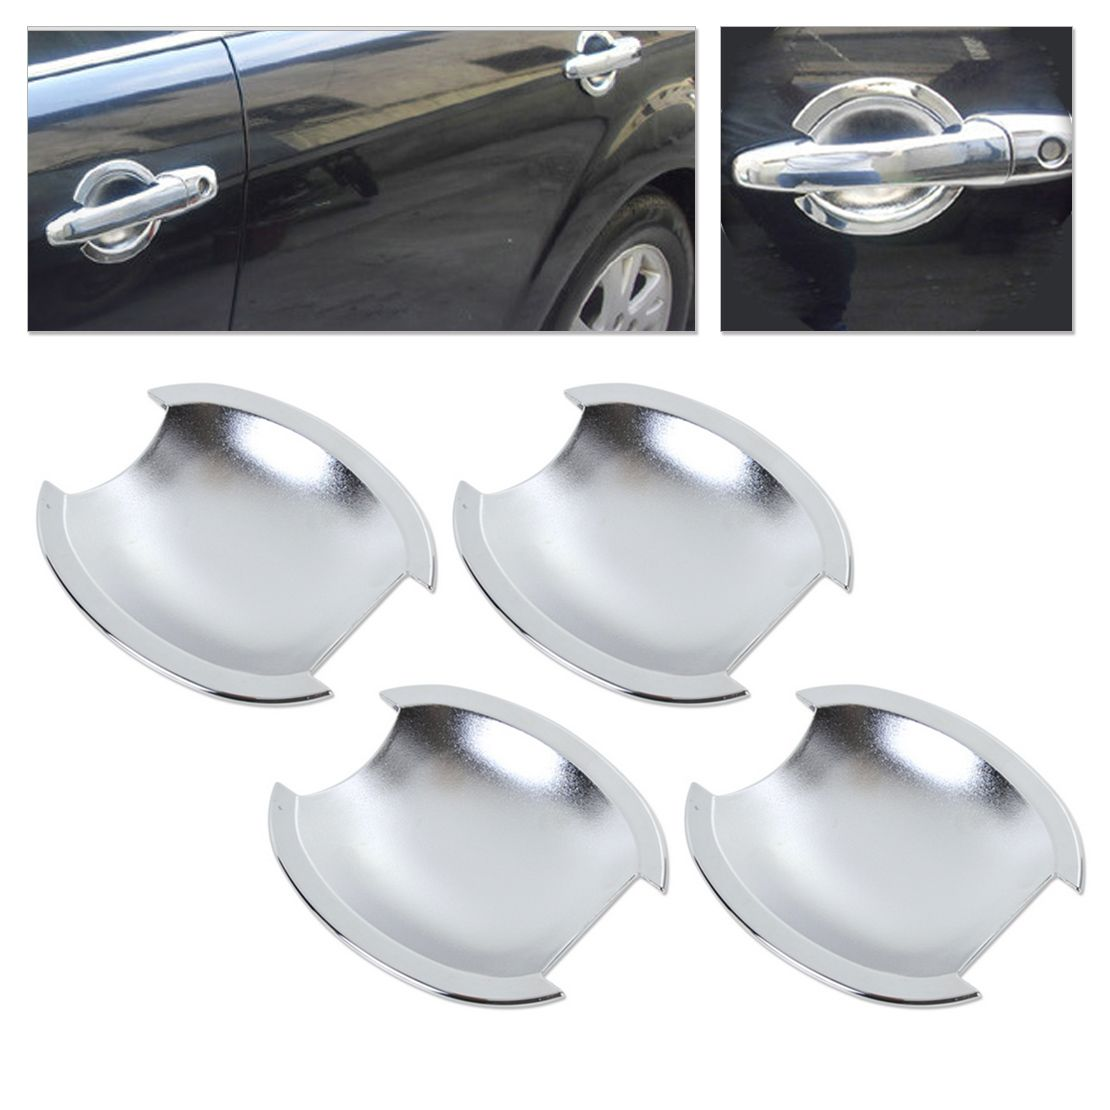 New High Quality Abs Plastics With Triple Chrome Door Handle Cup Bowl For Nissan Versa Tiida Latio 2007 2008 2009 Chrome Door Handles Nissan Versa Door Handles